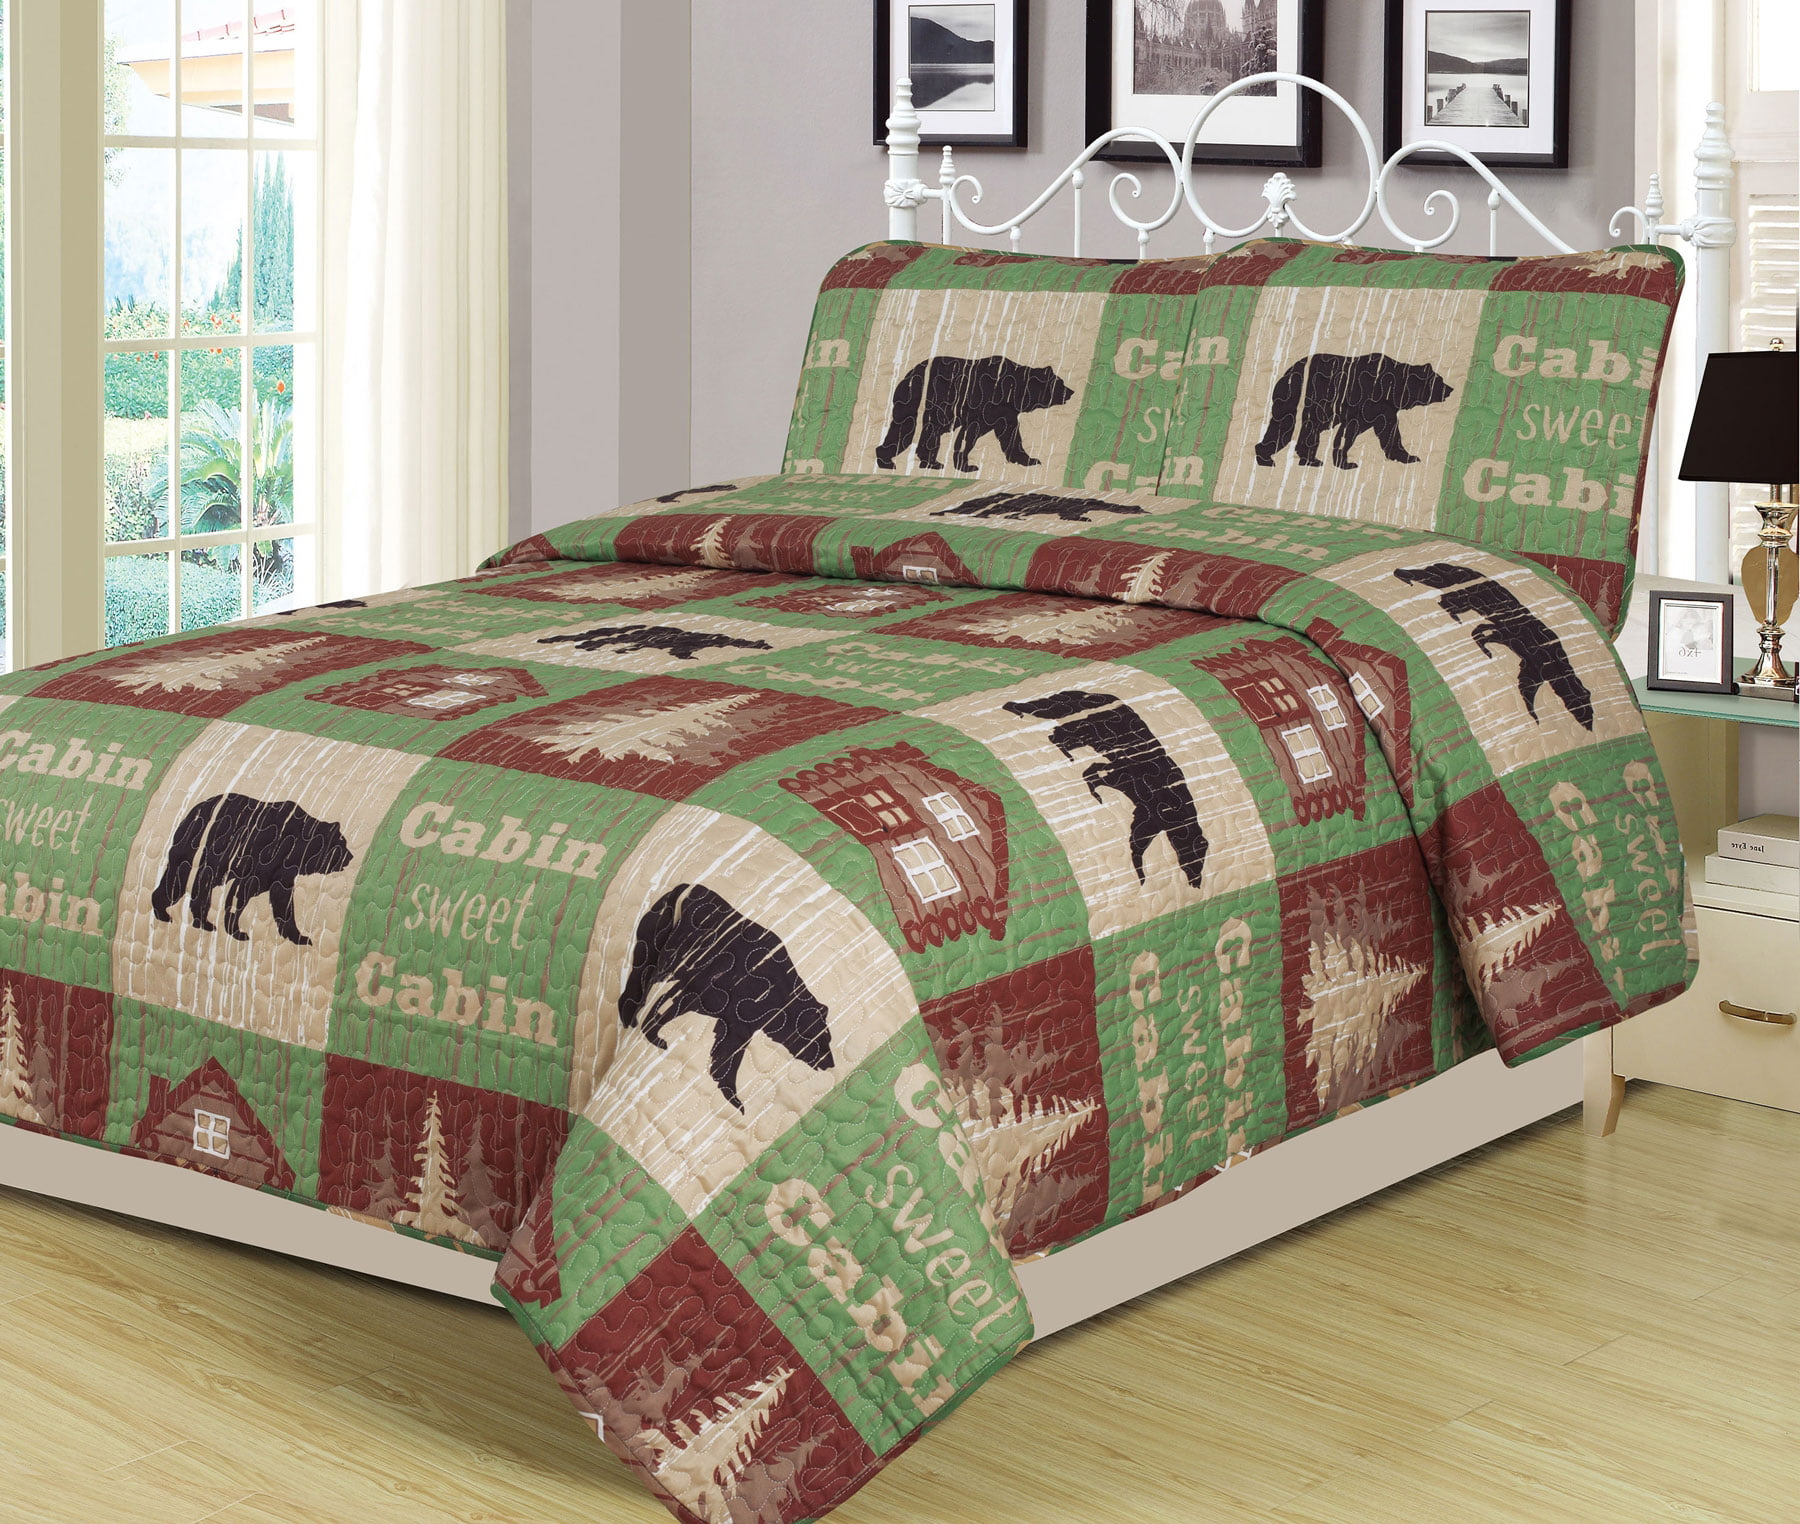 King Log Cabin Bear Quilt Set Country Rustic Lodge Cottage Bedspread Coverlet by